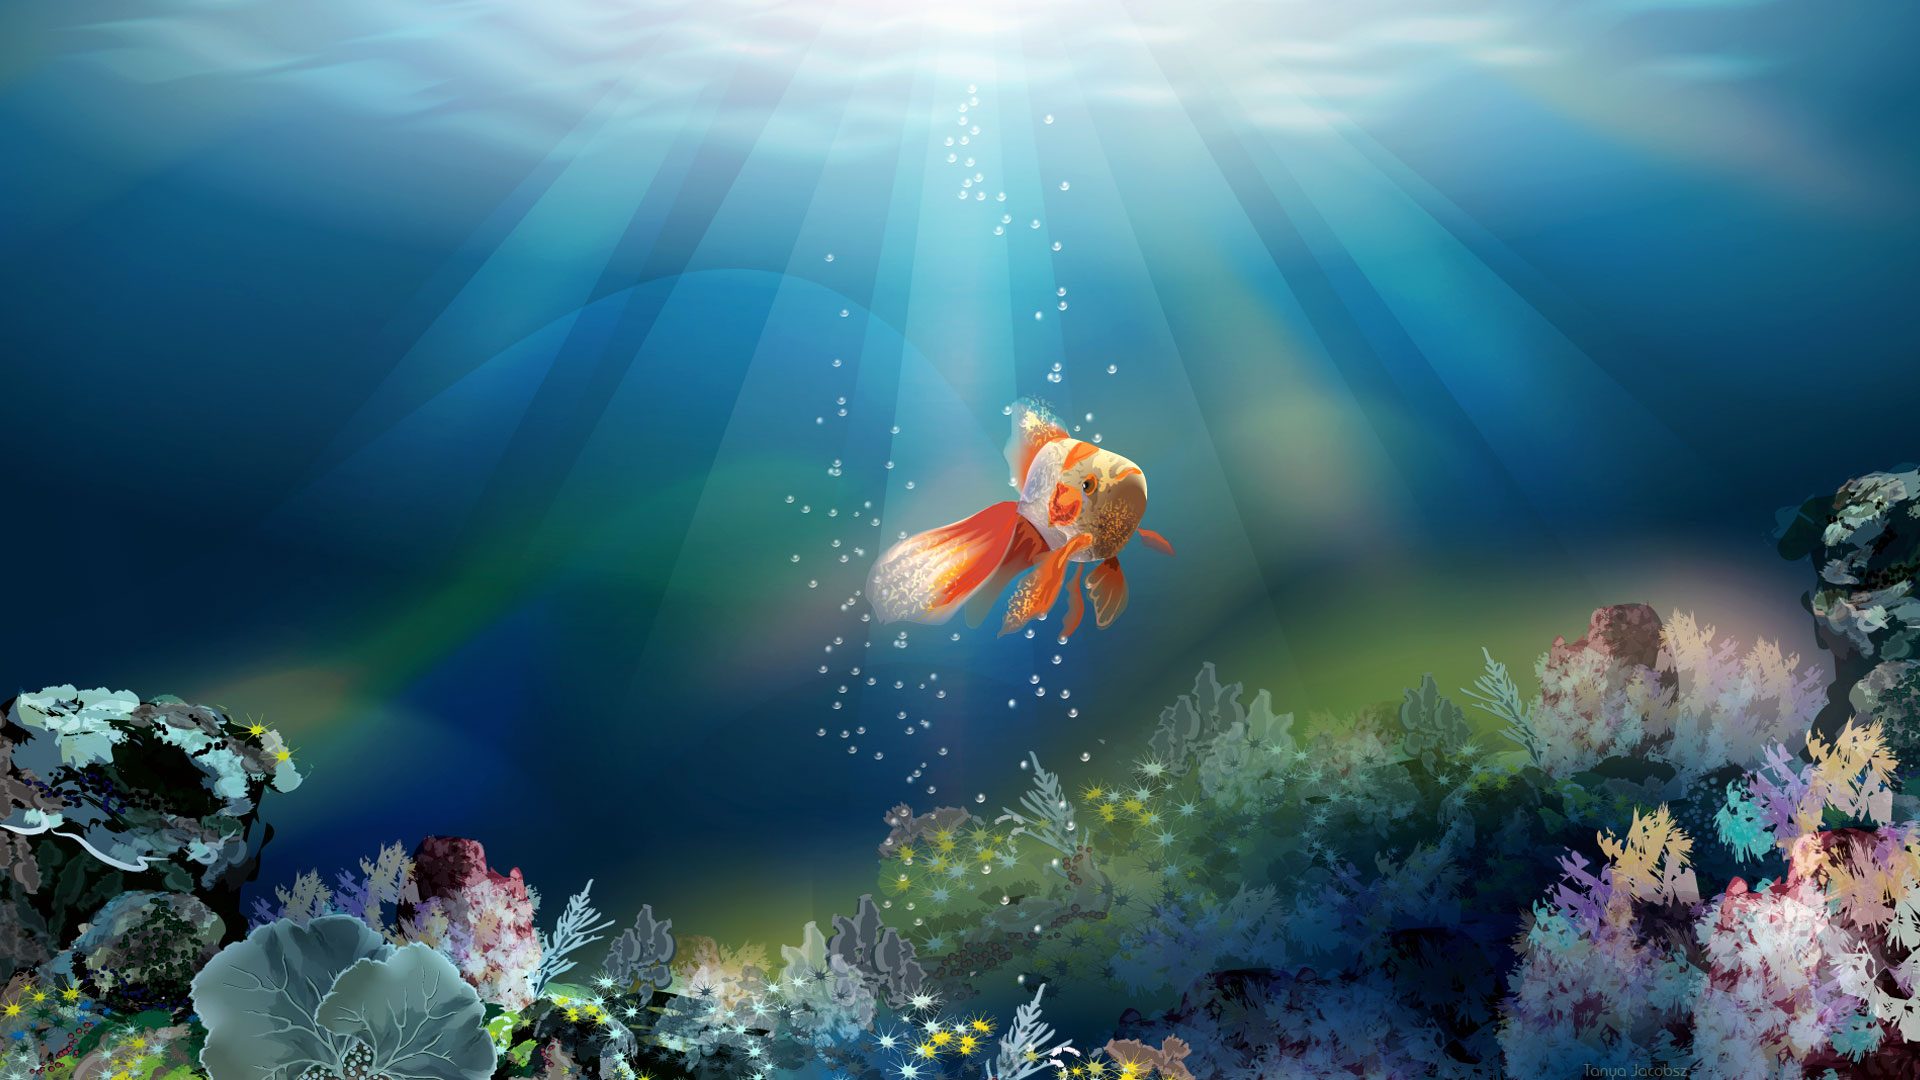 Related Wallpaper for Fish Wallpaper 3D Desktop 1920x1080